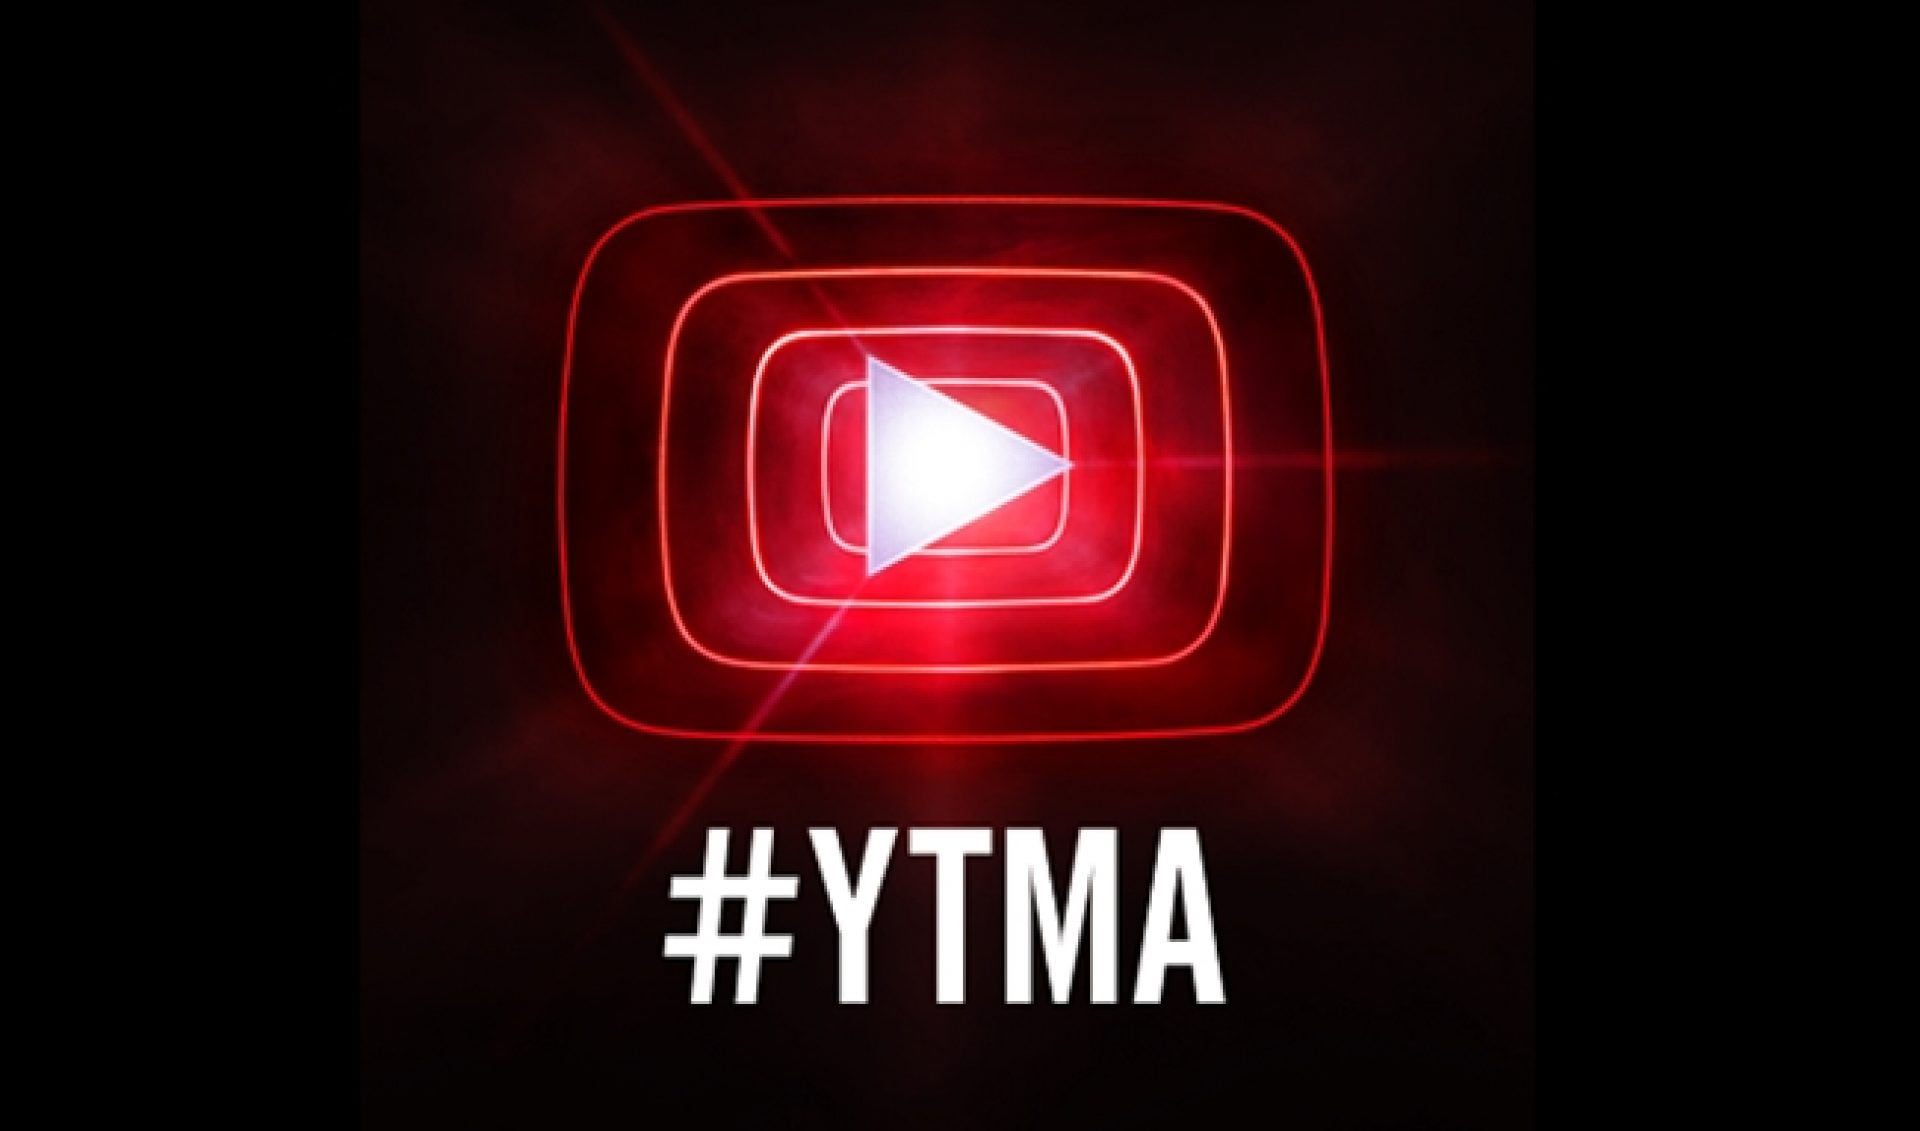 2015 YouTube Music Awards Arrive With Exclusive Videos